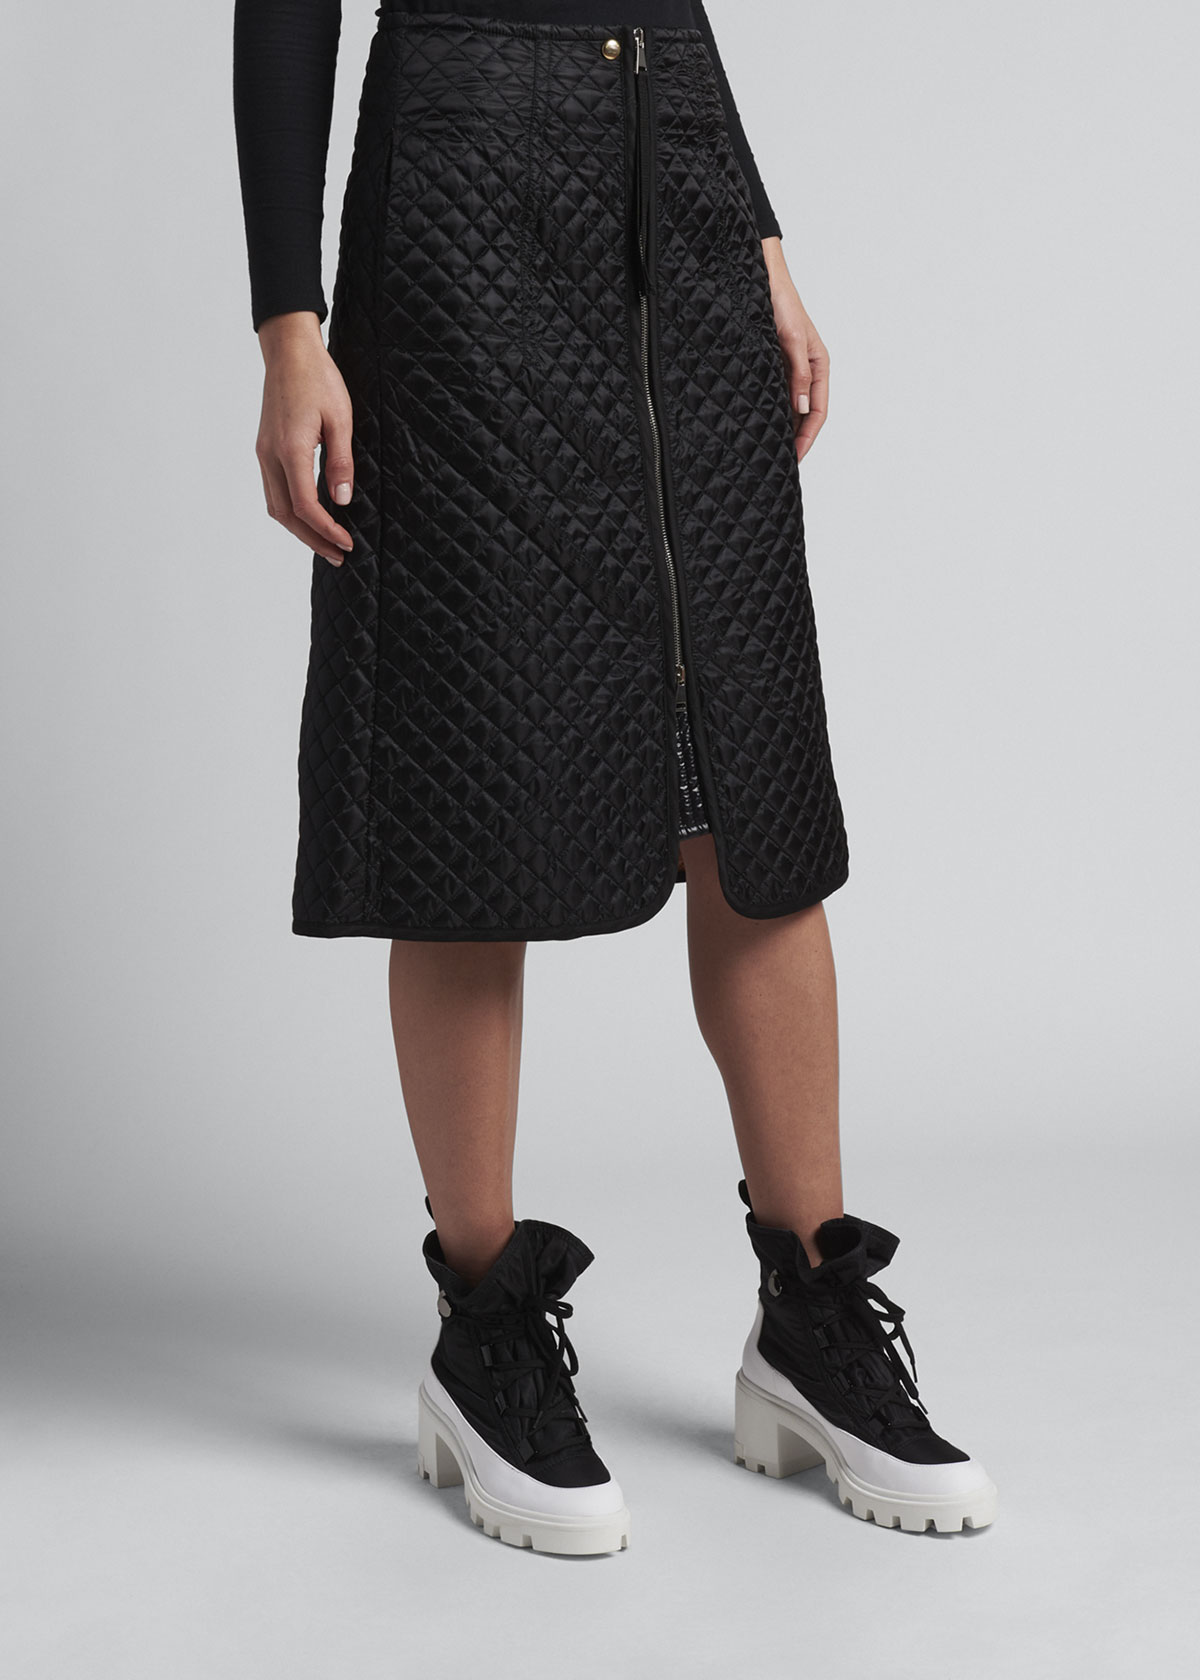 Moncler Genius 2 MONCLER 1952 DIAMOND-QUILT SKIRT